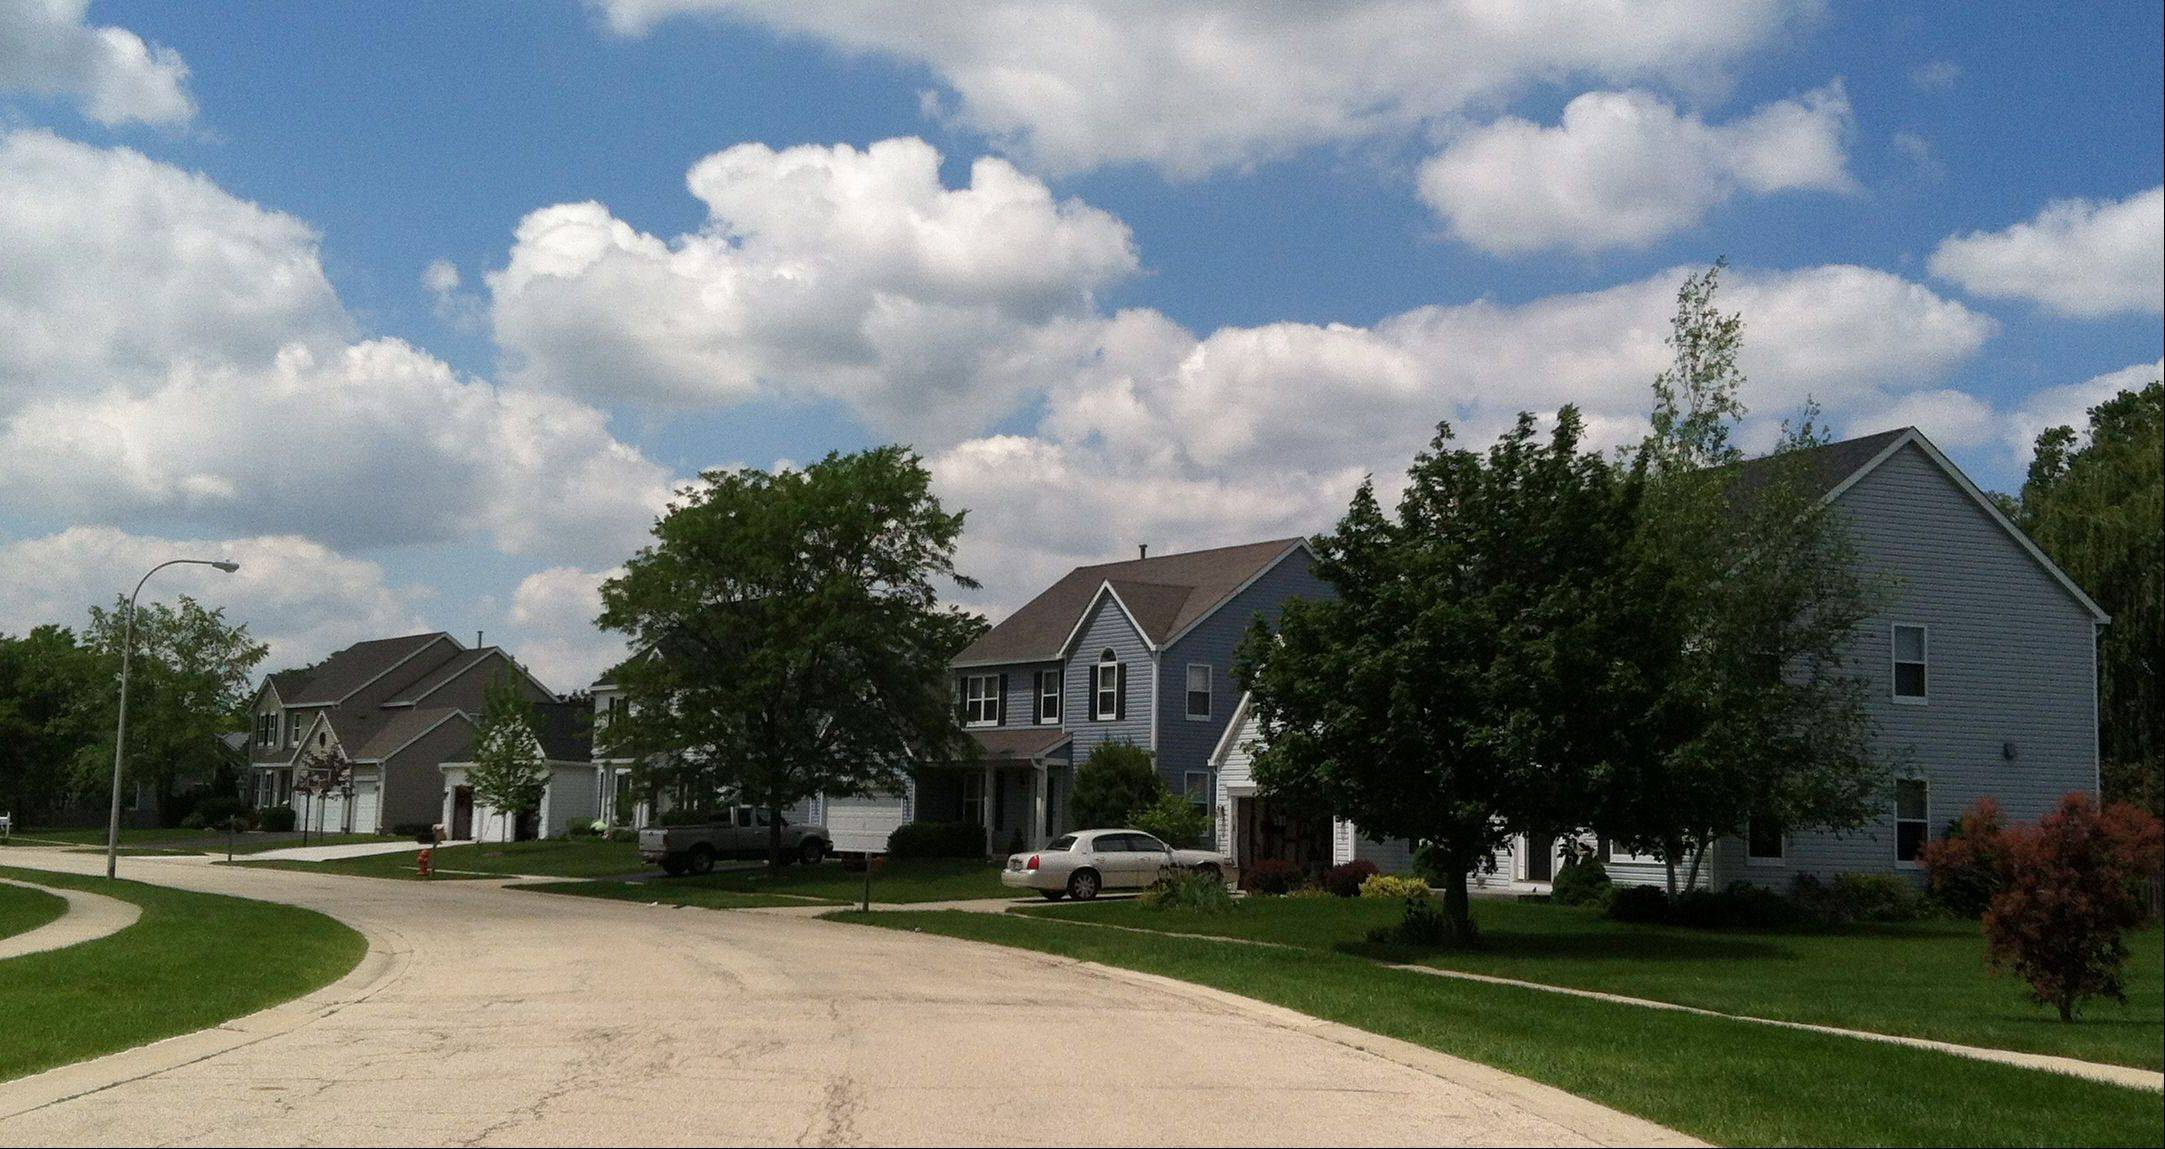 These houses along Cottonwood Drive are typical of those found in the Woodbridge South subdivision.